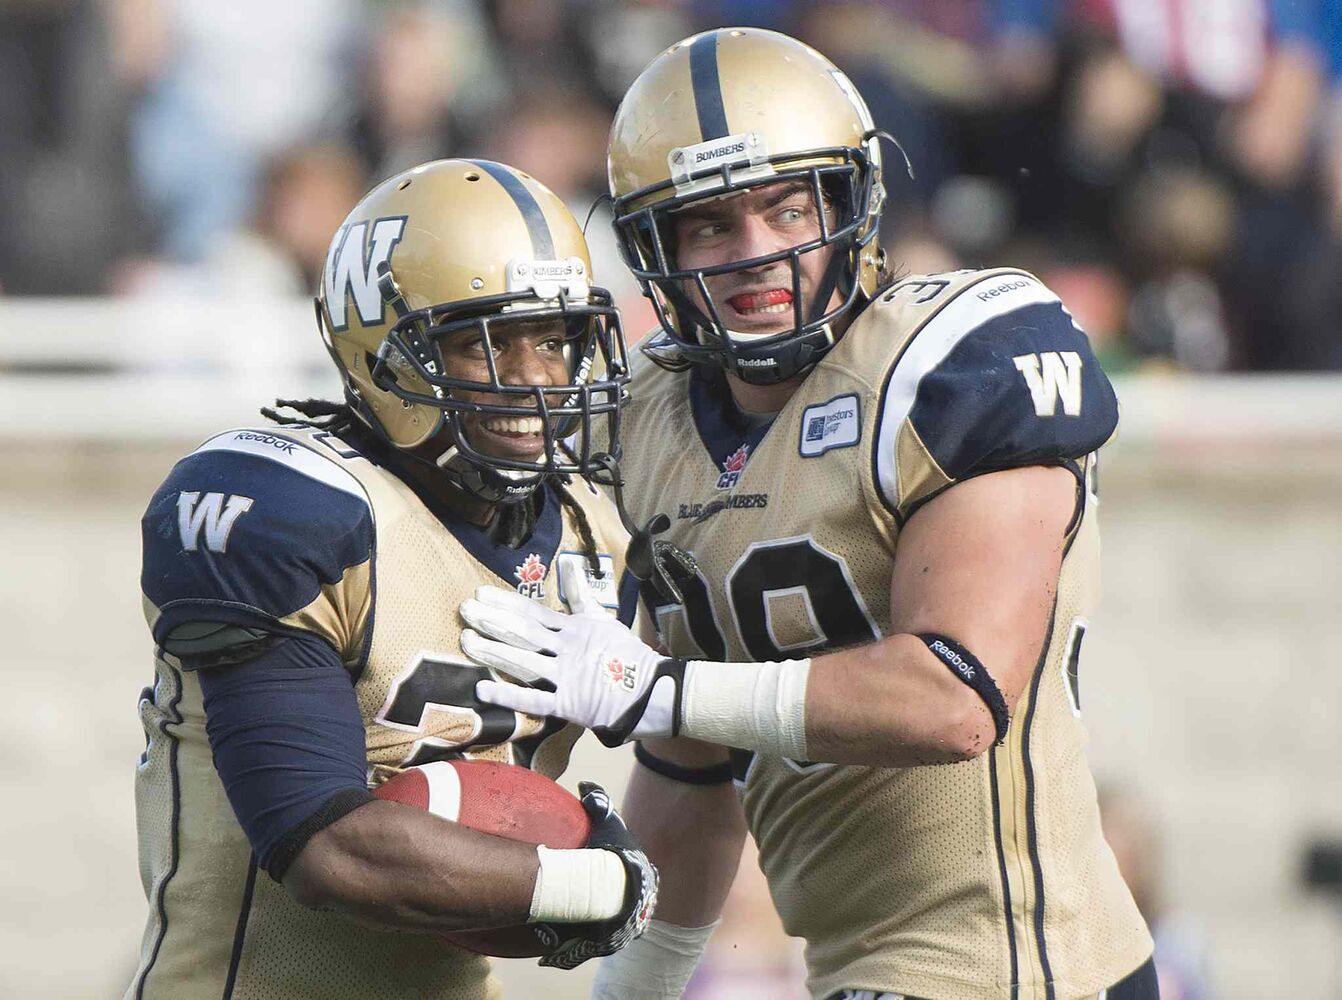 Winnipeg Blue Bombers' Will Ford, left, celebrates with teammate Michel-Pierre Pontbriand after scoring a touchdown against the Montreal Alouettes during second-half CFL football action in Montreal Monday. The Bombers went on to win 34-27. (Graham Hughes / The Canadian Press)